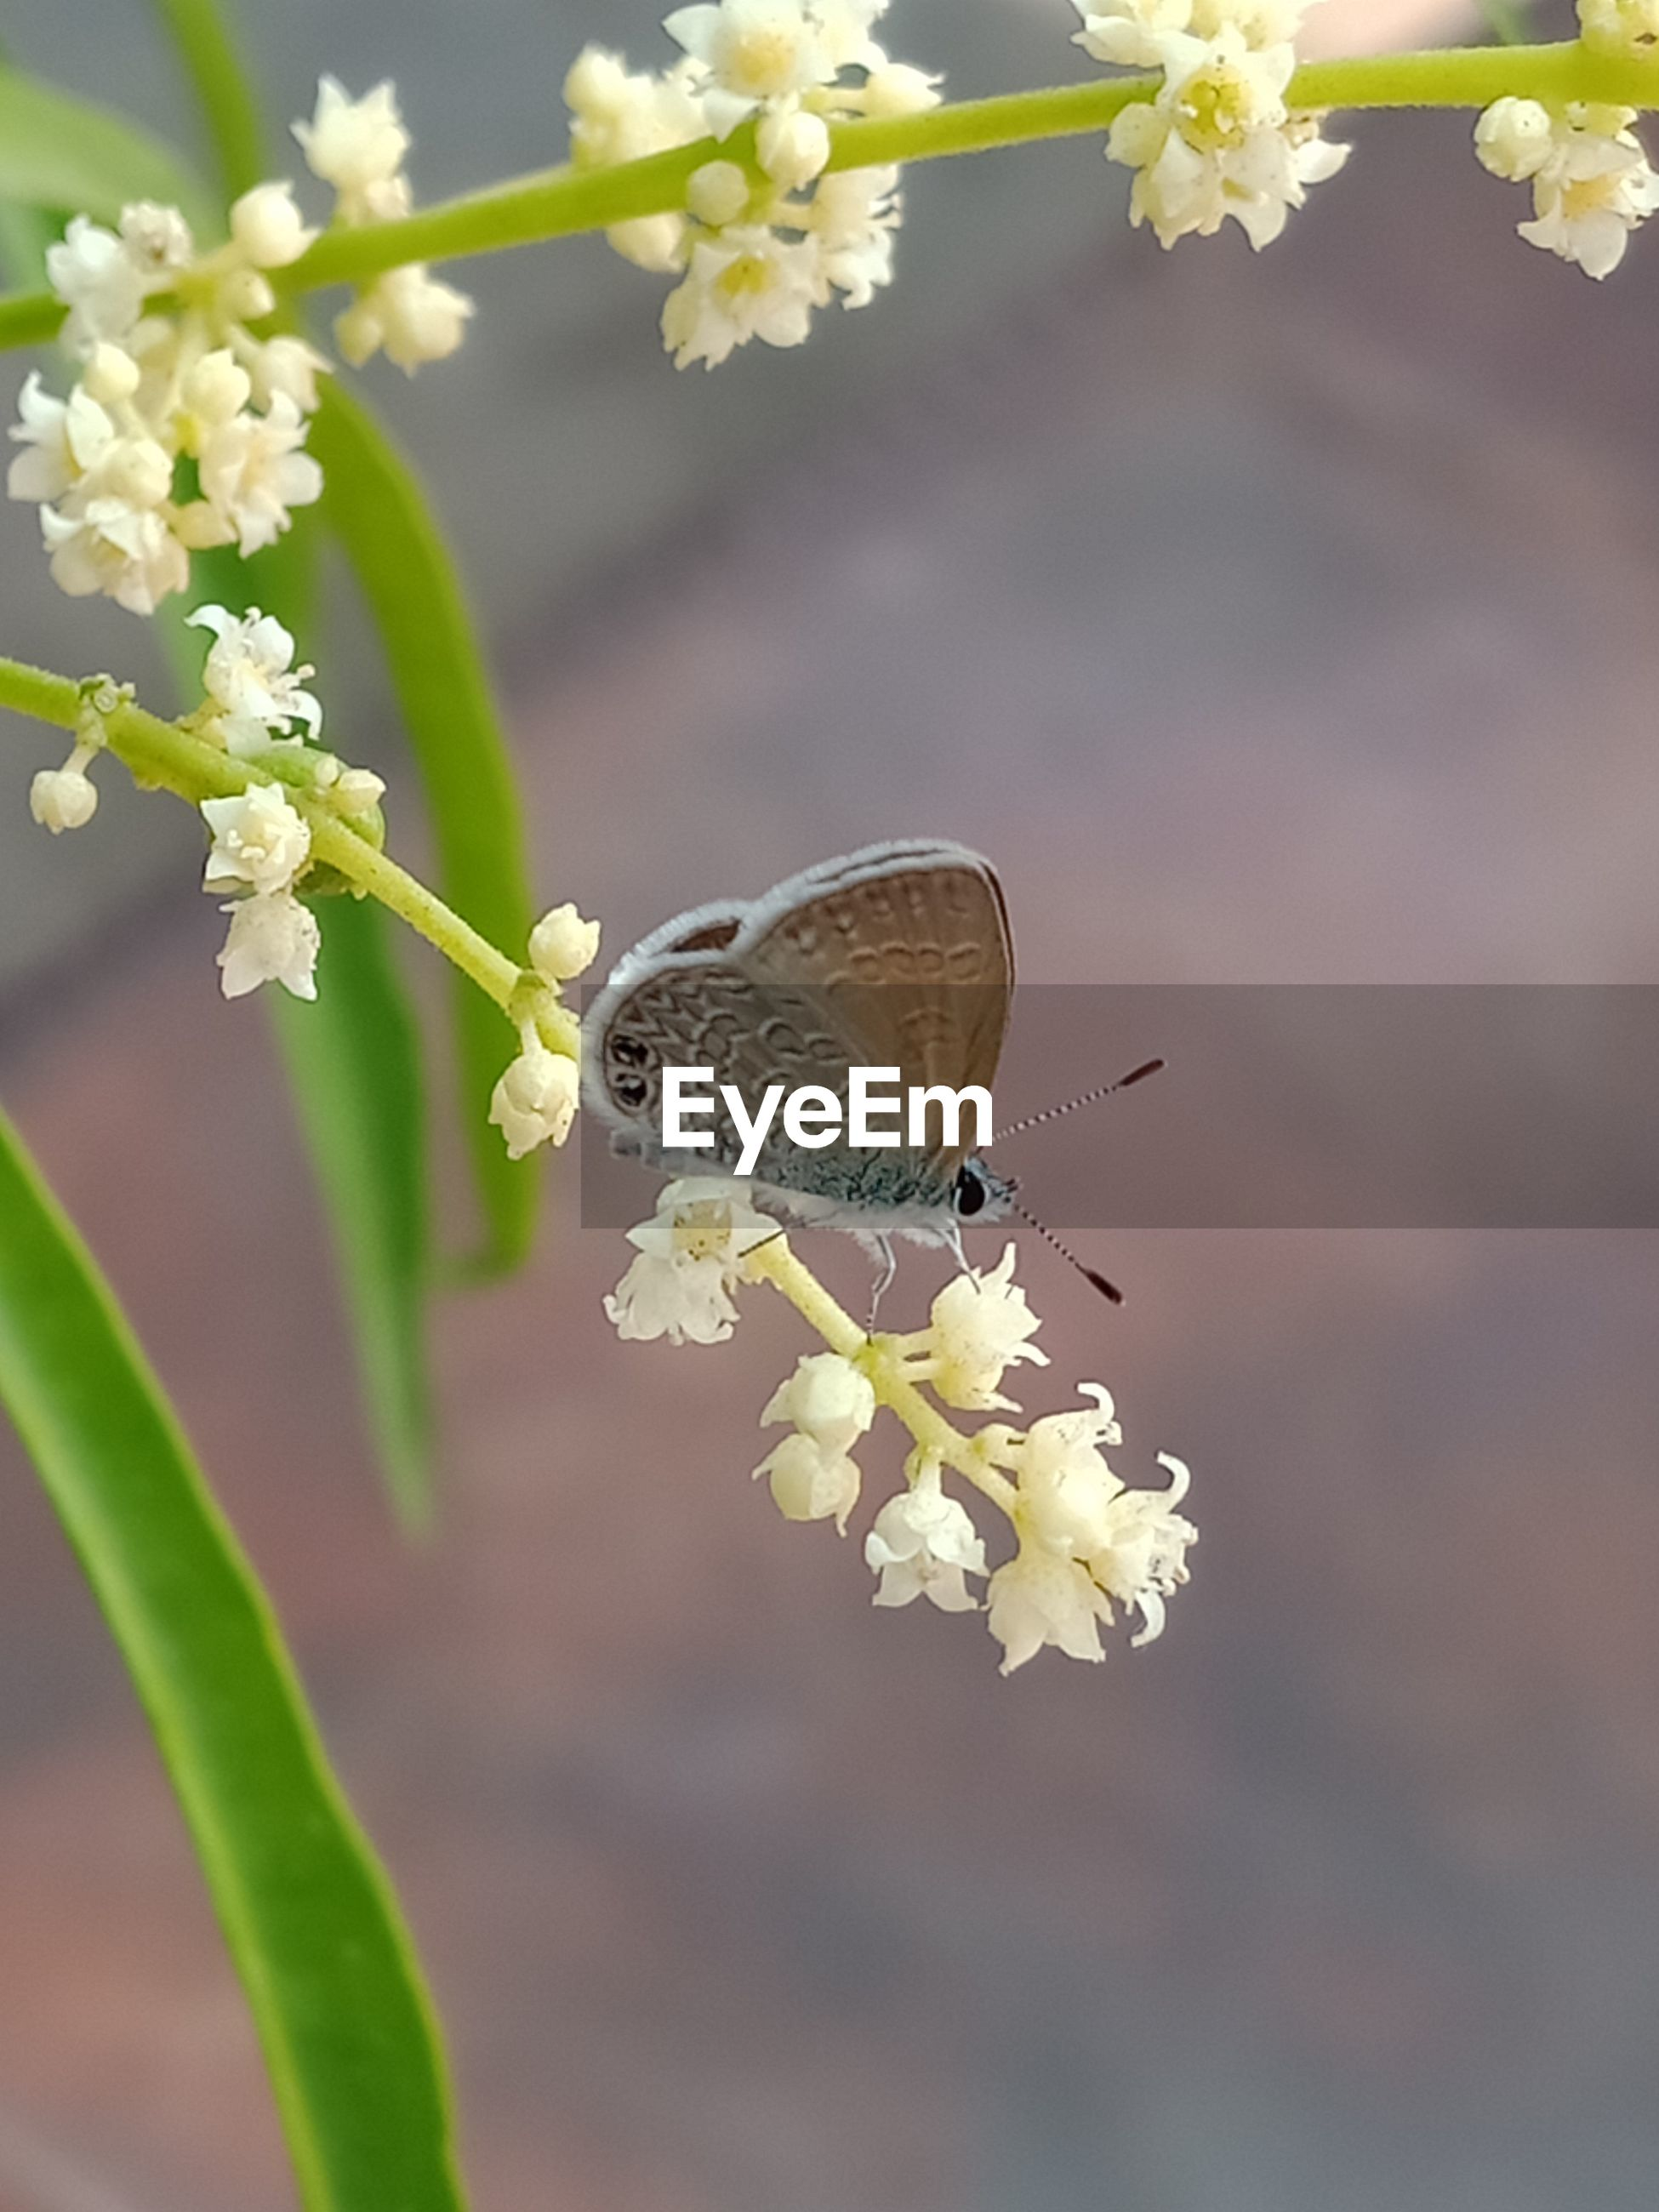 Tropical butterfly that likes small flowers and green leaves